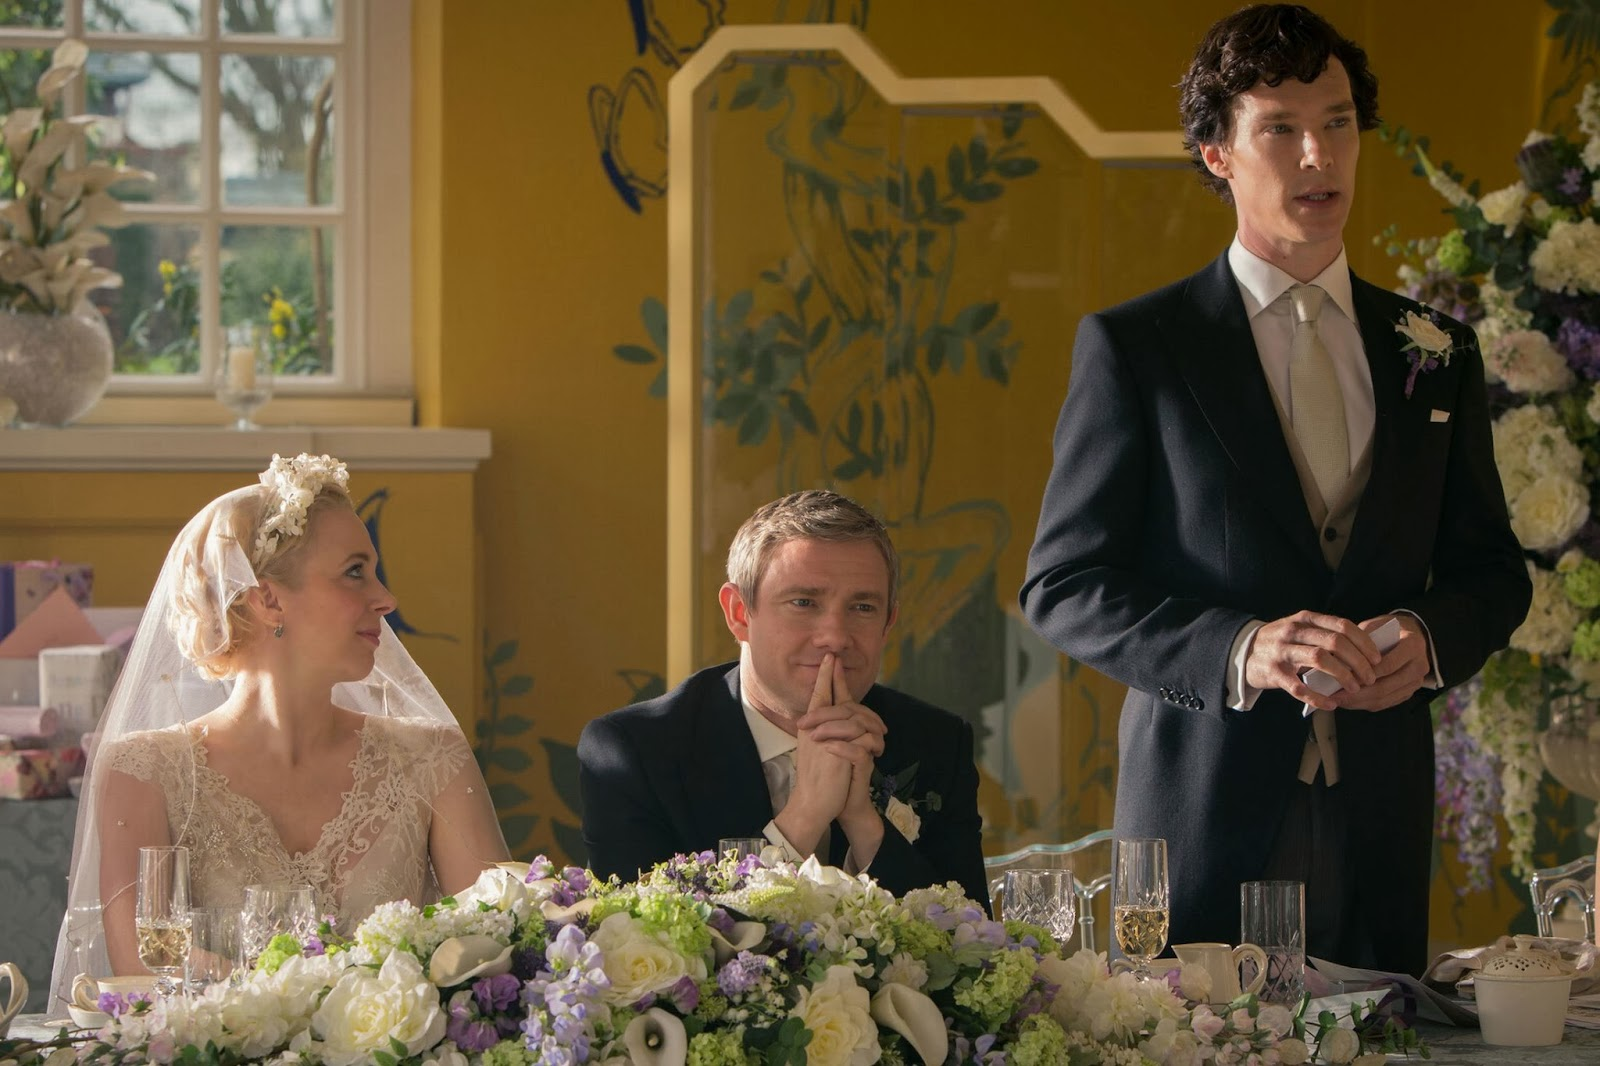 Benedict Cumberbatch as Sherlock Holmes delivers the best man speech at the wedding of John Watson and Mary Morstan in BBC Sherlock Season 3 Episode 2 The Sign of Three